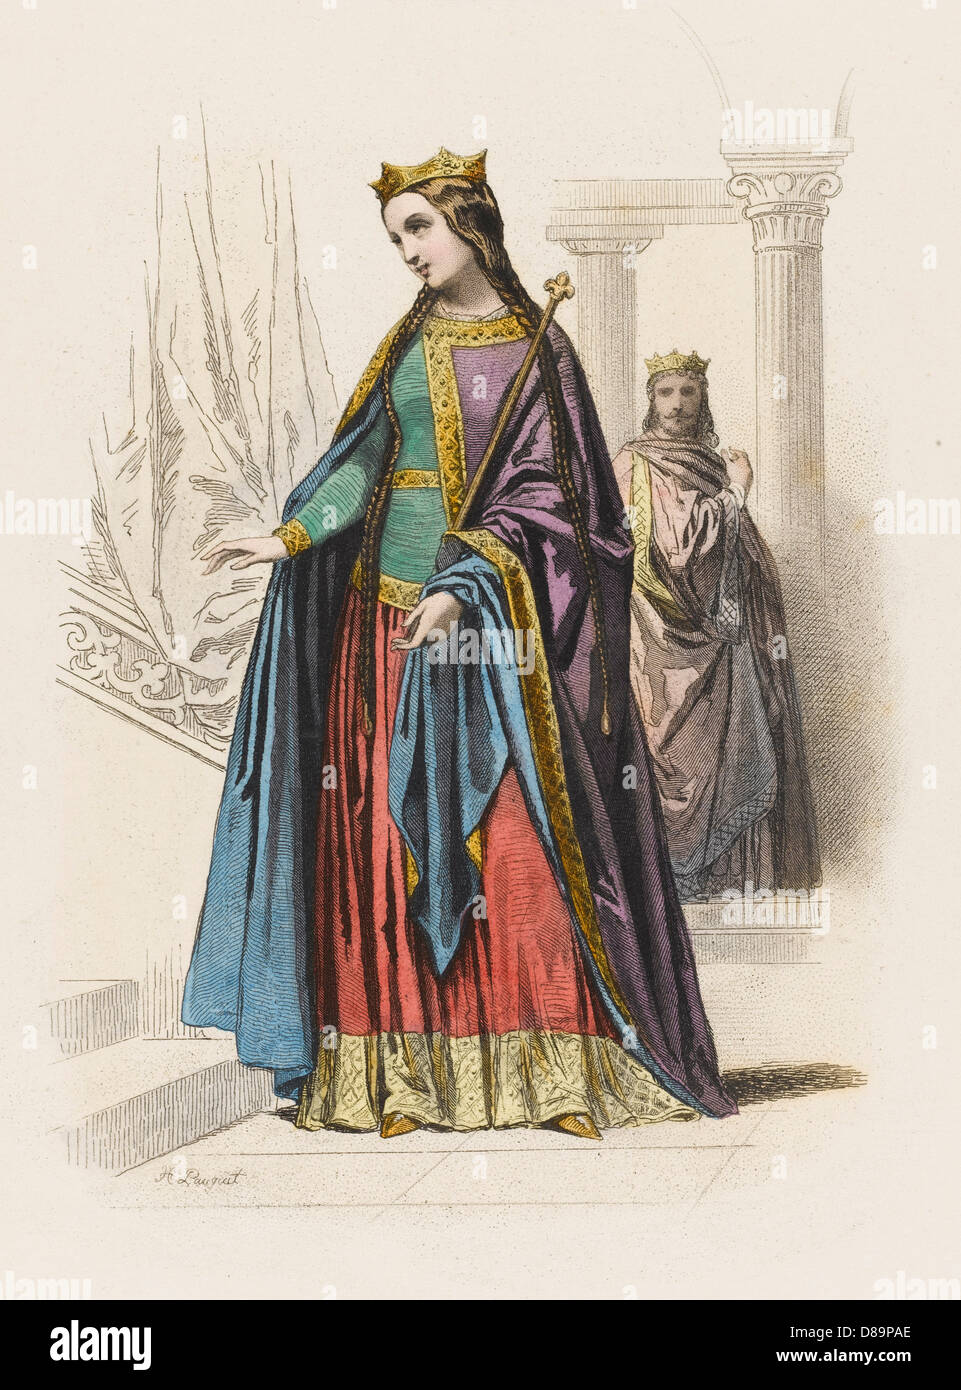 Costume Royalty 10th C - Stock Image